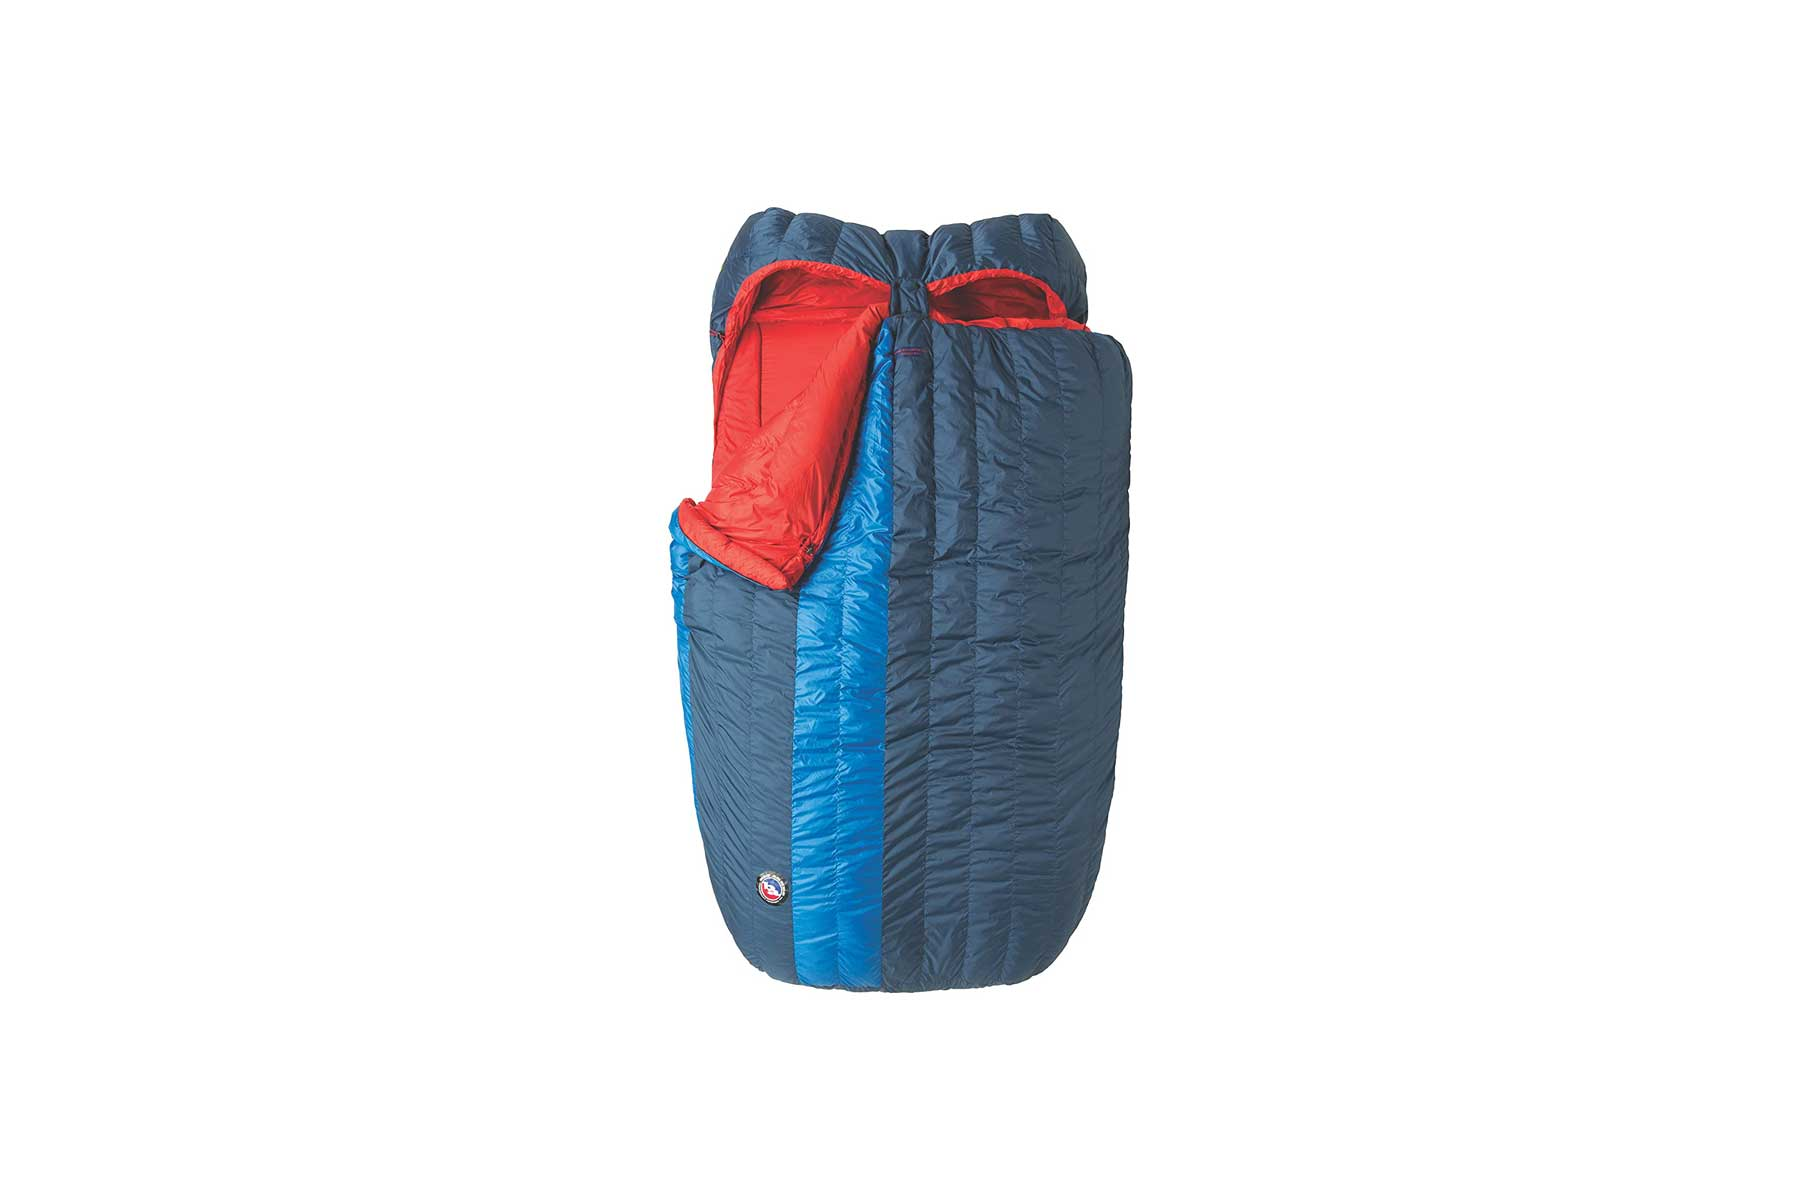 A double sleeping bag for two people